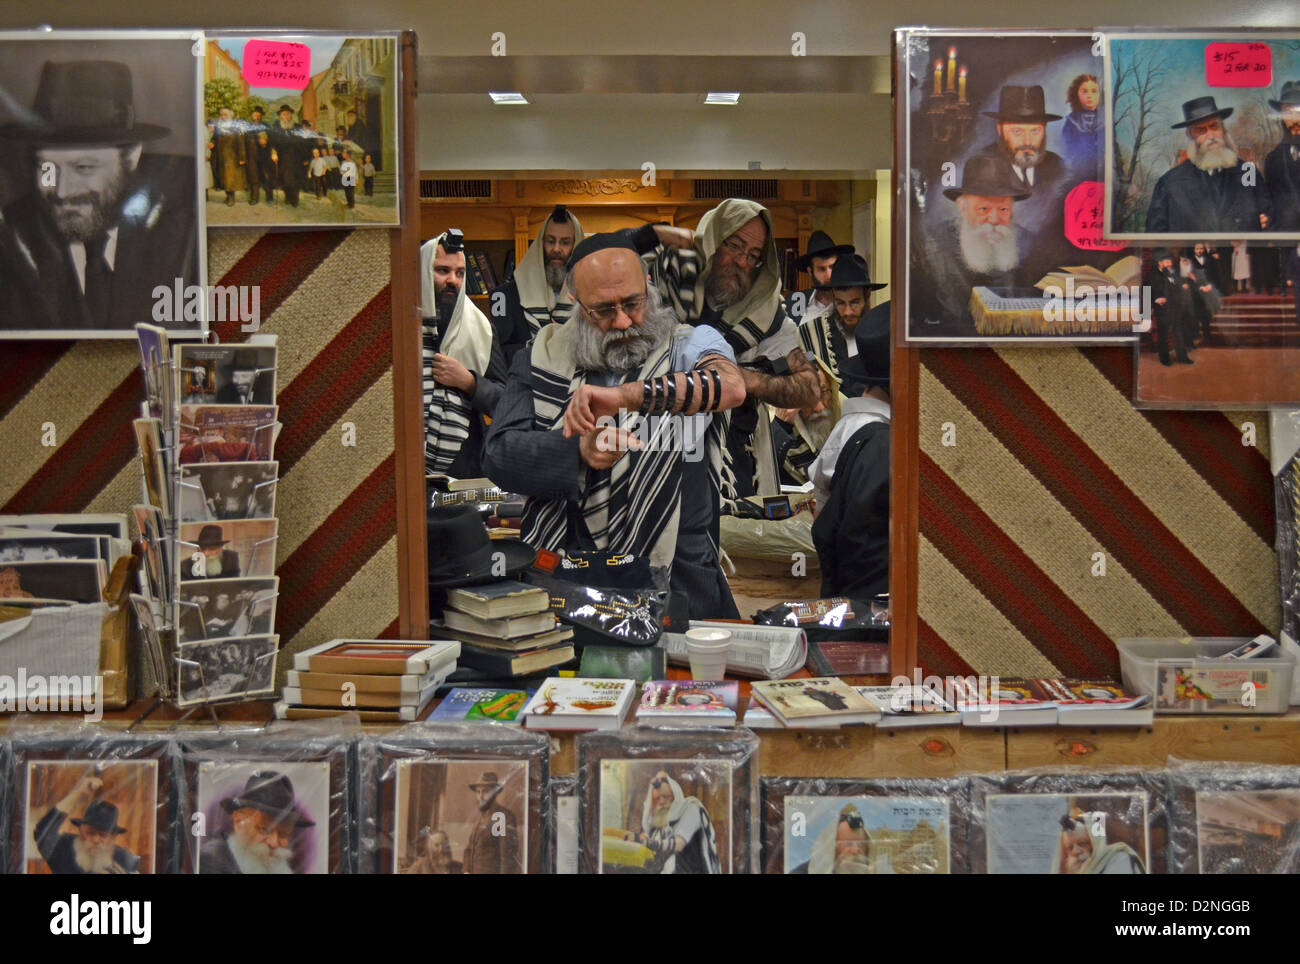 Framed by photos for sale of the Rebbe, a man putting on teffilin at morning services at Lubavitch headquarters - Stock Image